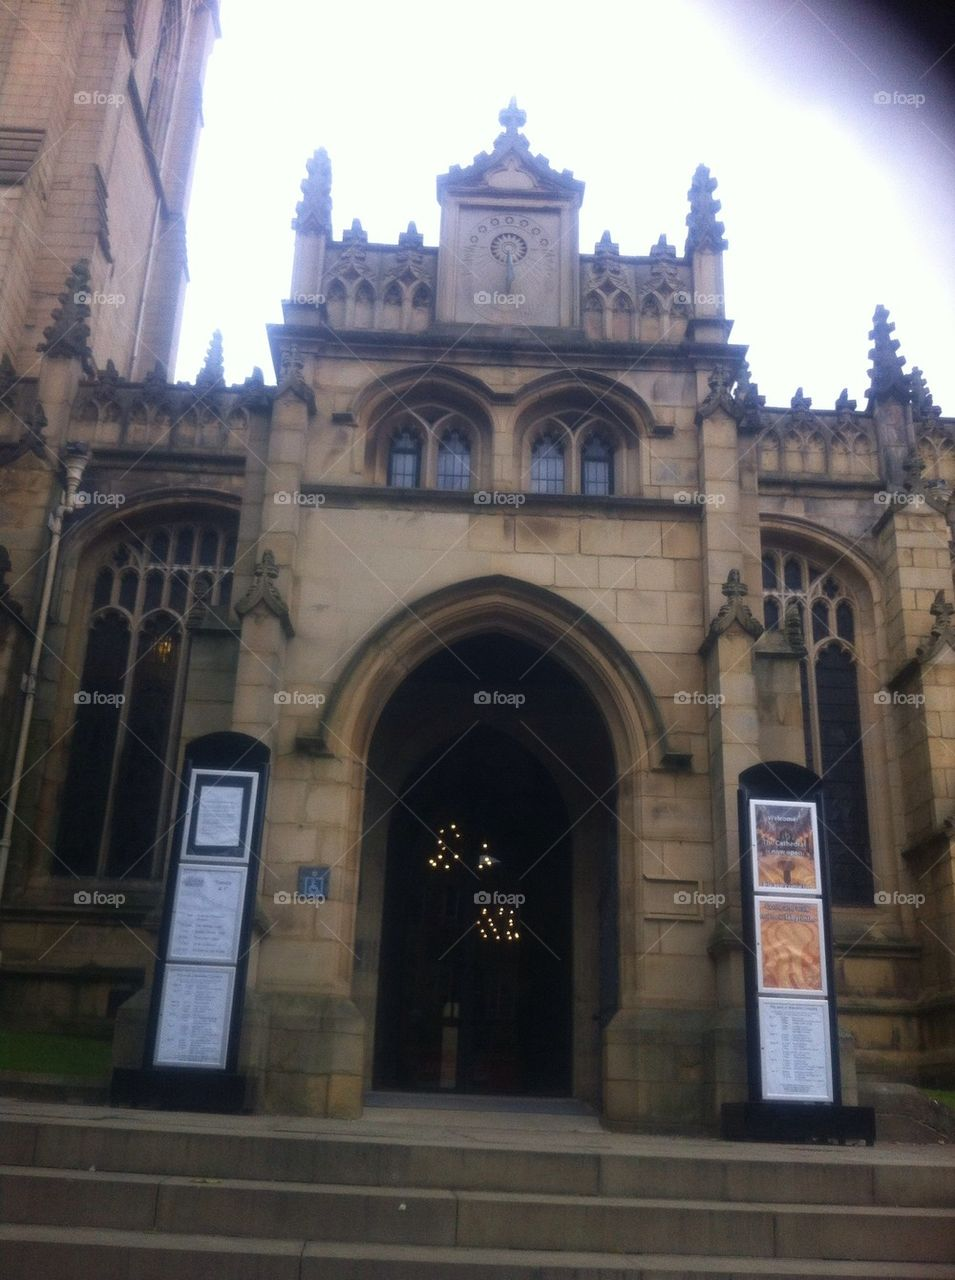 Entrance to Wakefield cathedral